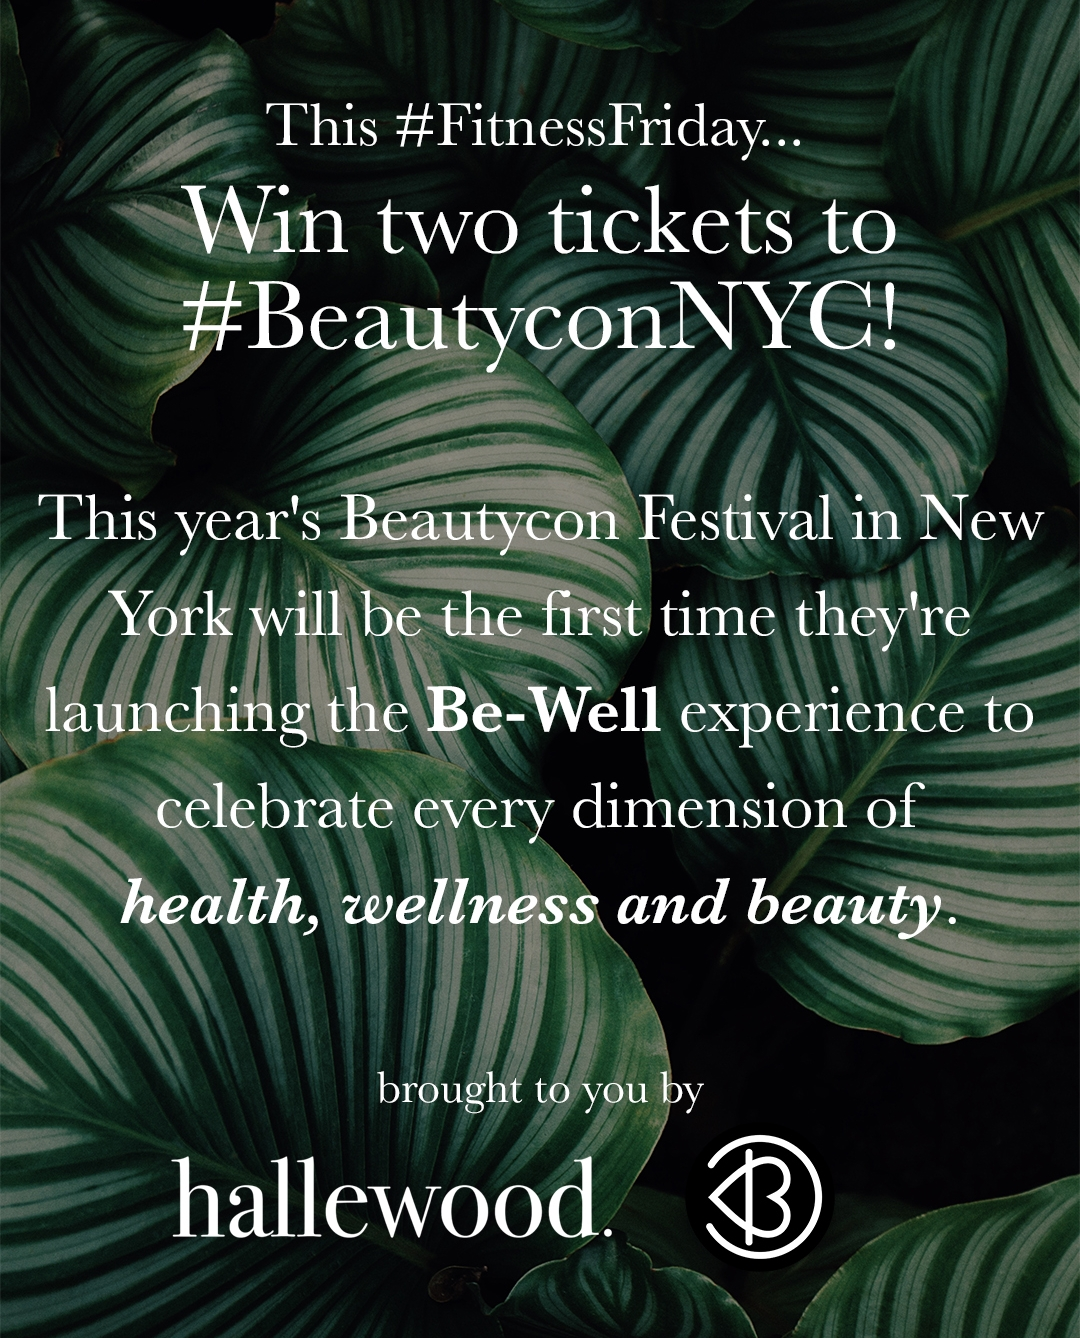 -  The beauty world is constantly evolving, building a deeper connection between health, wellness, and what we know as being beautiful. From day one, Beautycon's vision has been to challenge traditional standards and redefine what beauty means. Since self-care and a healthy lifestyle are at the top of everyone's to-do list, how we treat ourselves determines the state of our mind, body, and spirit. With that in mind, Beautycon is bringing all-new experiences to #BeautyconNYC that celebrate every dimension of health and wellness.That's why we're giving away 2 tickets to #BeautyconNYC, but the promotion ends tomorrow, so be sure to enter now! *Closes at 9:00am PST on April 14th. Contest promotion rules can be found here.